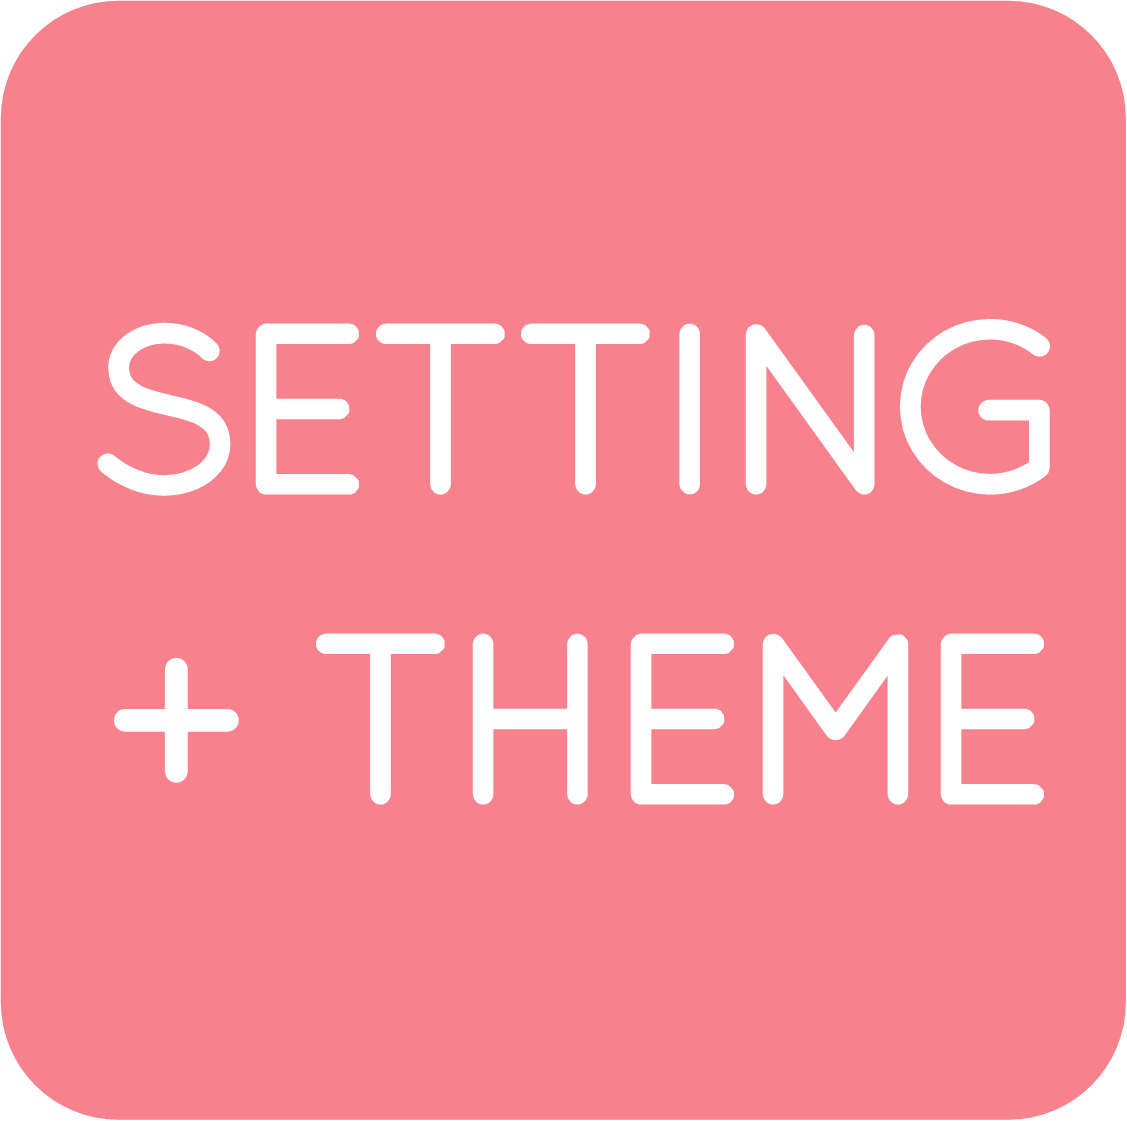 00-setting and theme.png